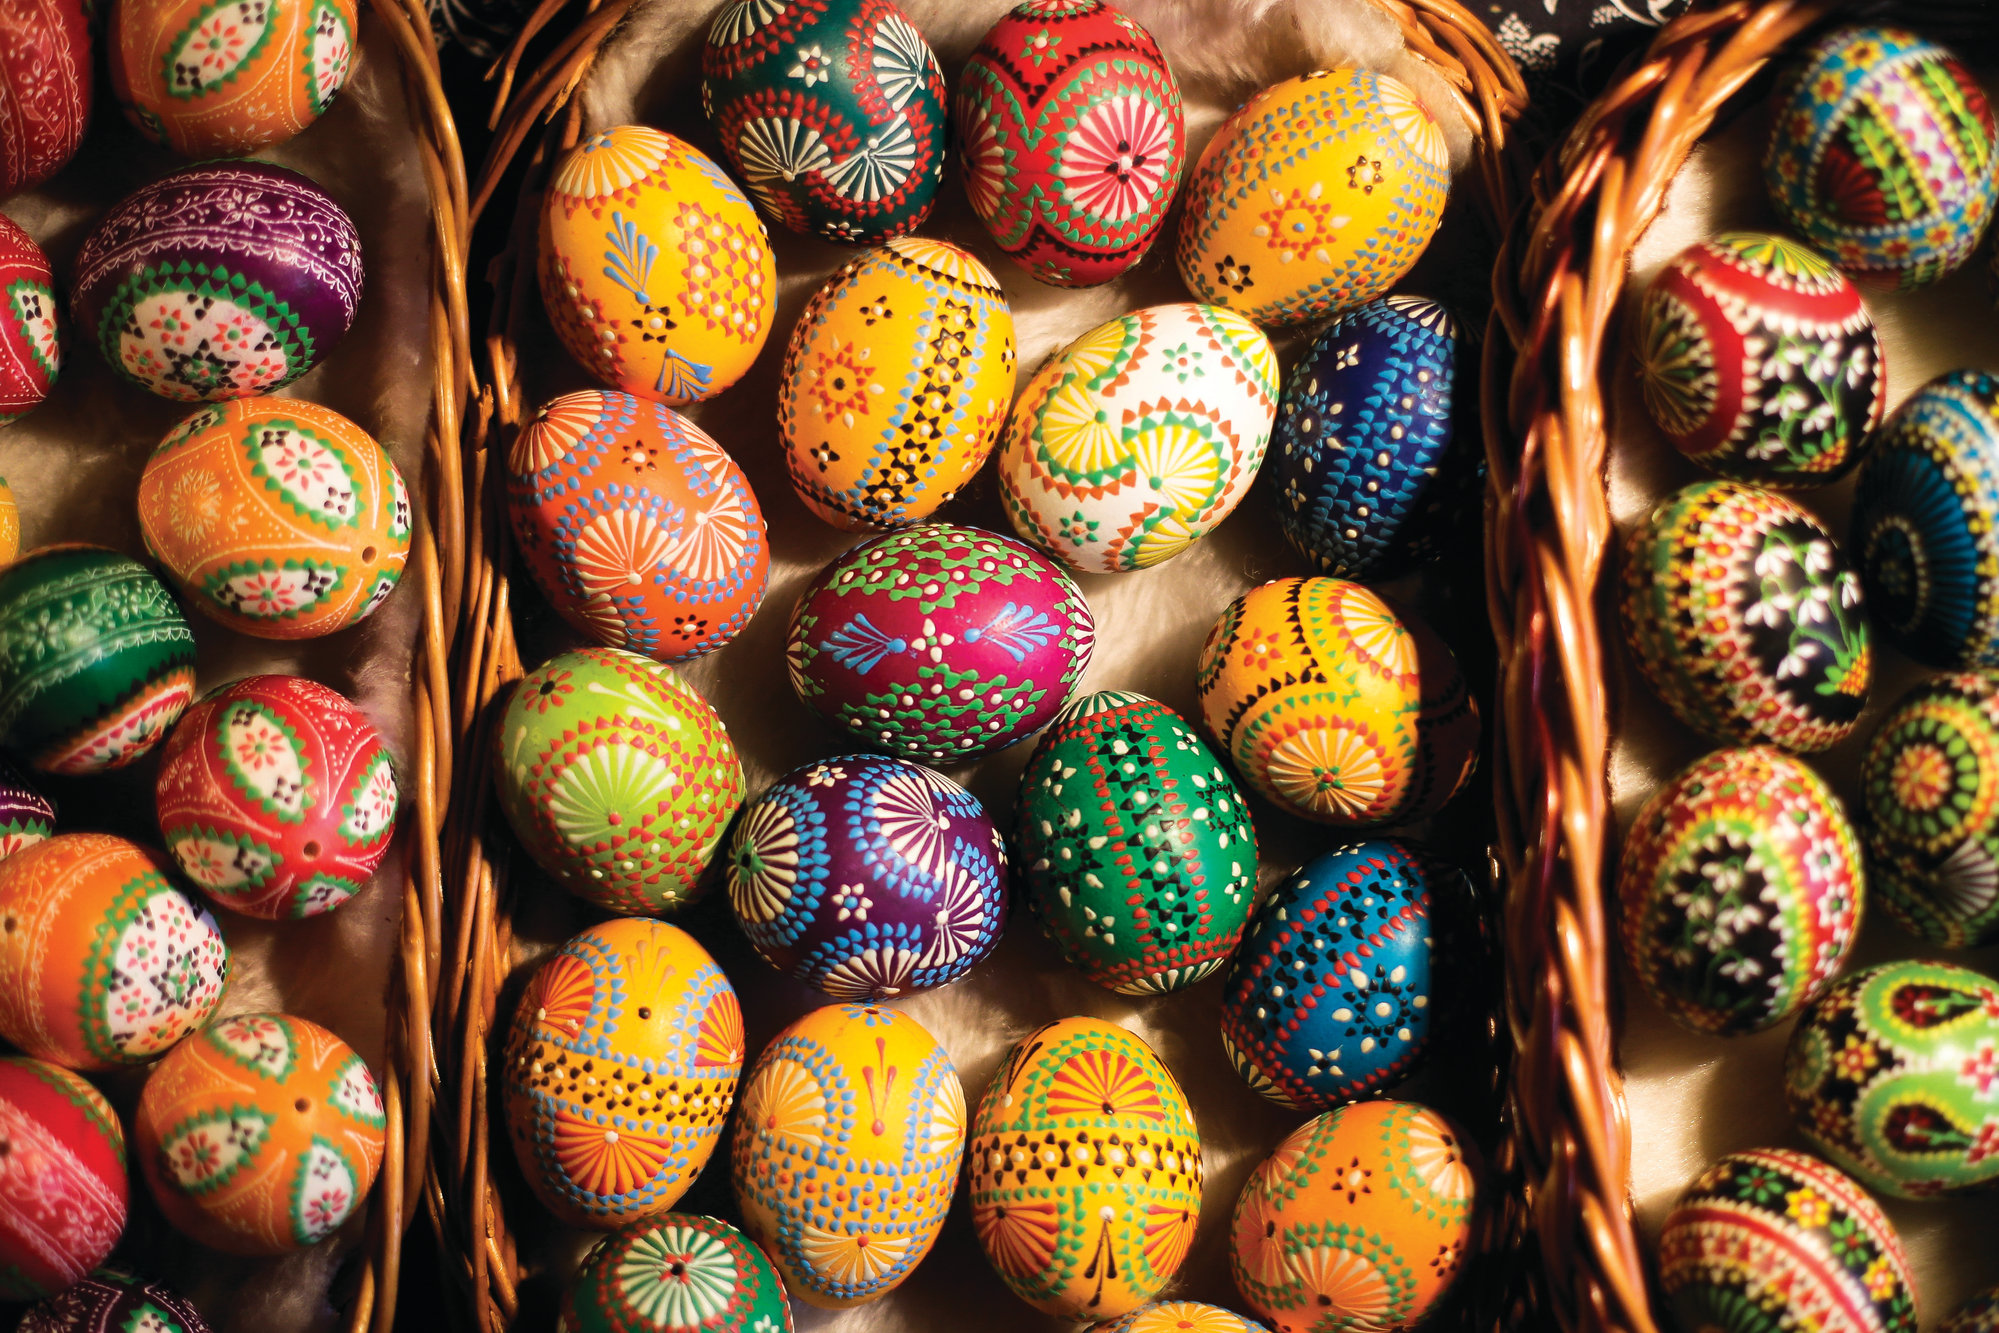 Easter eggs are seen at a traditional Easter Market of Germany's Sorb minority in the village Neuwiese, near the city of Hoyerswerda in east Germany, on April 14. A tiny Slavic minority in Germany is keeping alive a long and intricate tradition of hand-painting Easter eggs with the help of knives, feathers and wax.